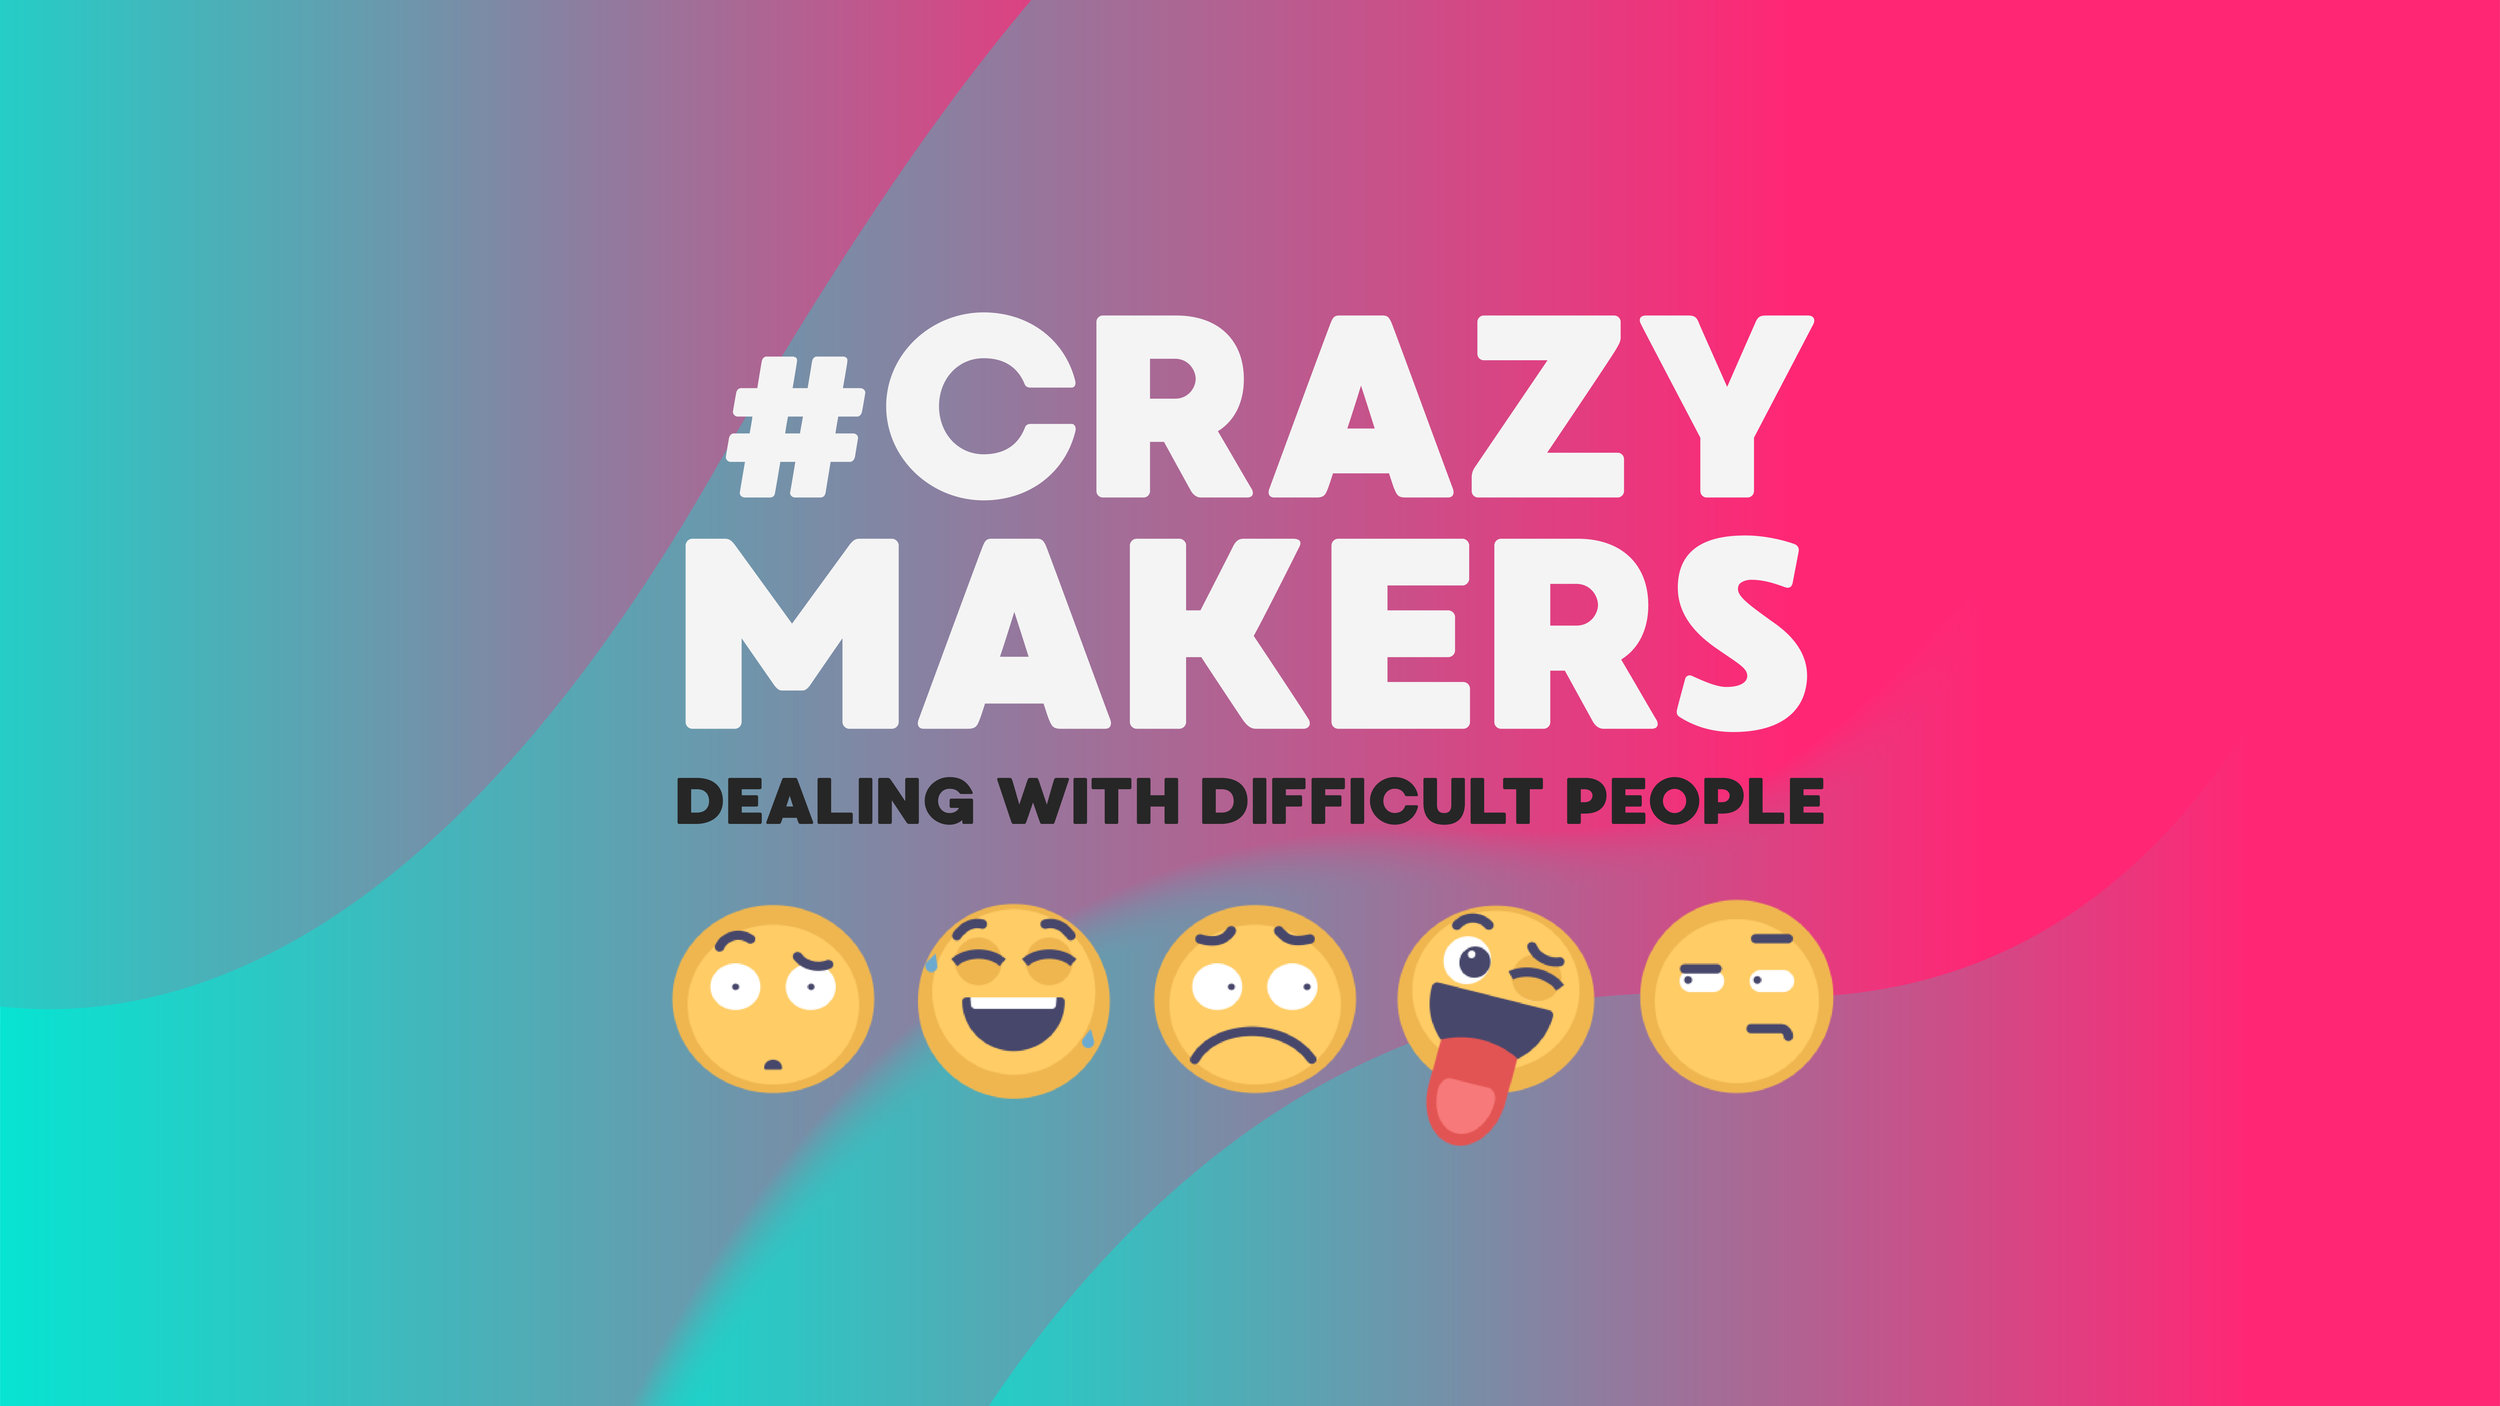 Crazymakers